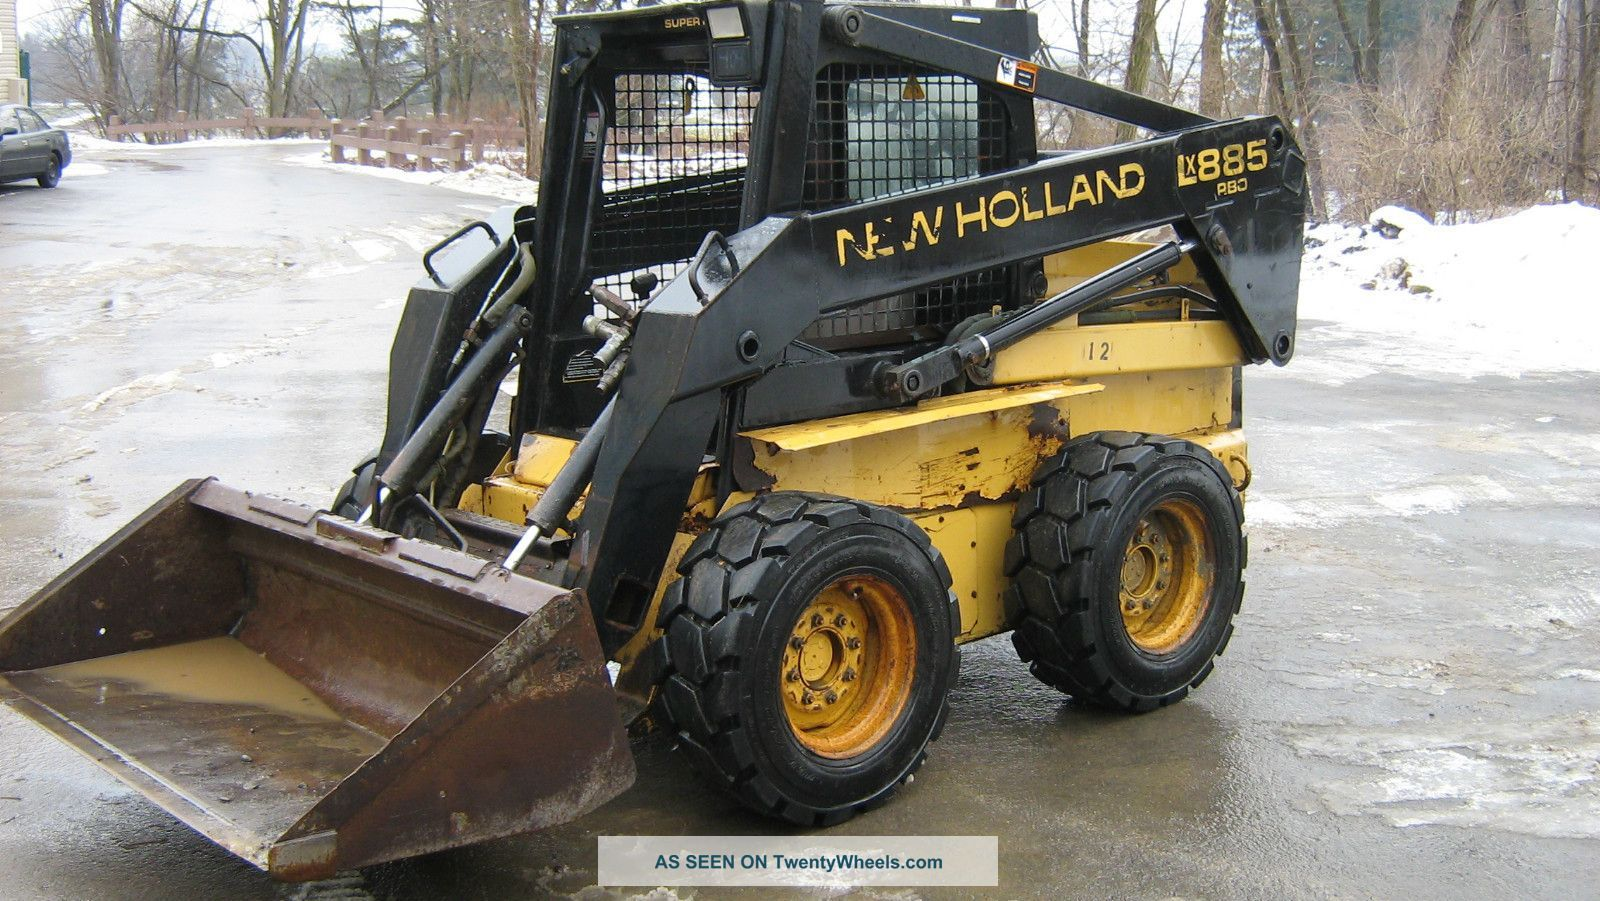 Maintenance, New Holland Lx885 specs Skid Steer Loader Parts Manual, This  is specifically like